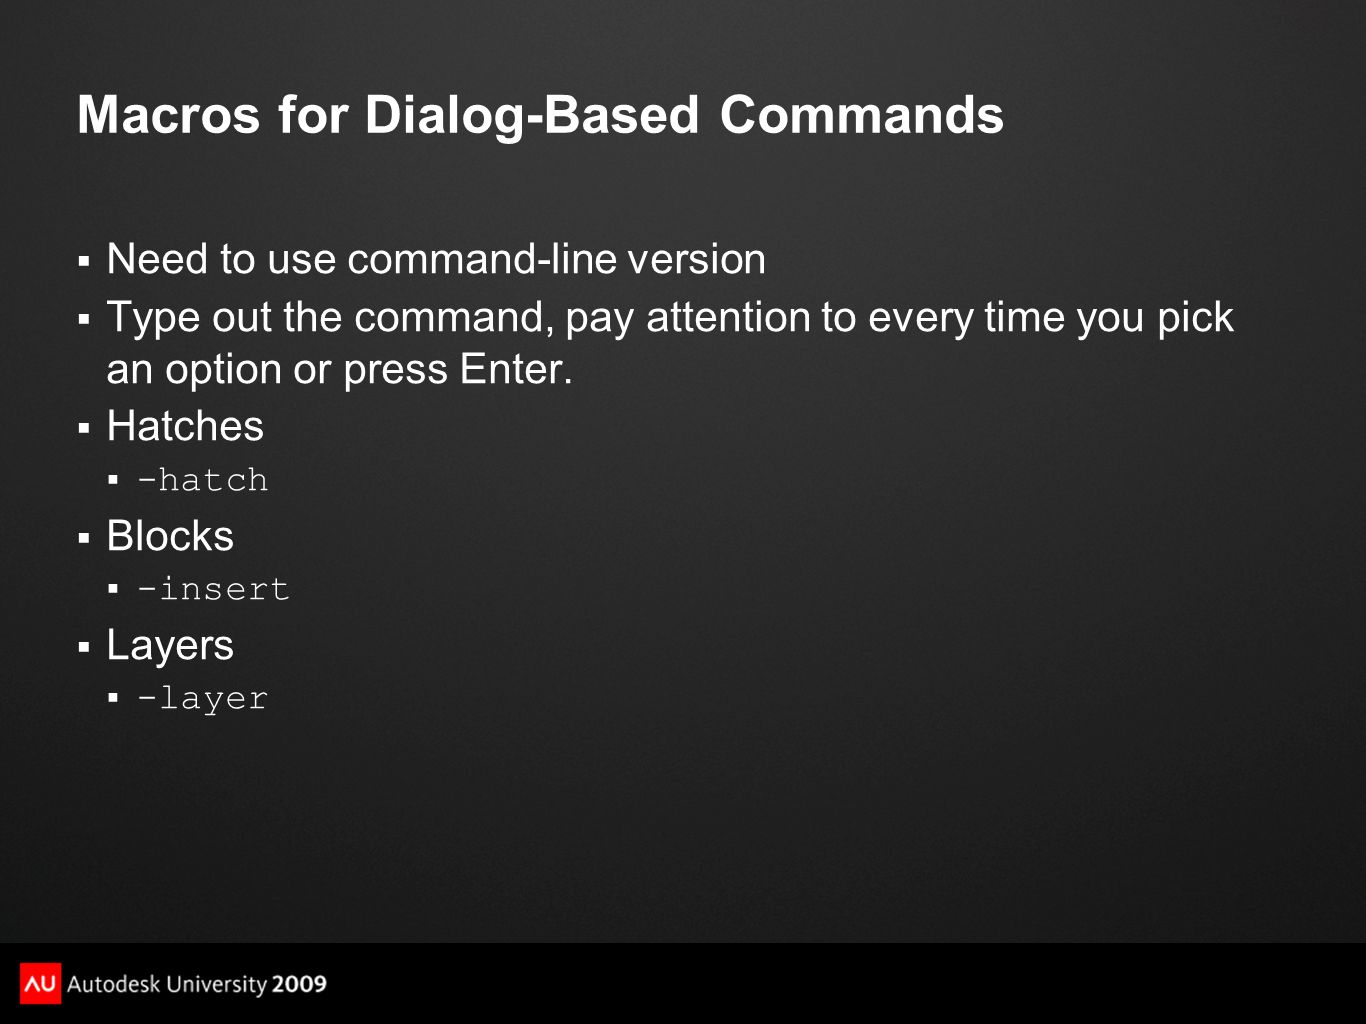 Macros for Dialog-Based Commands